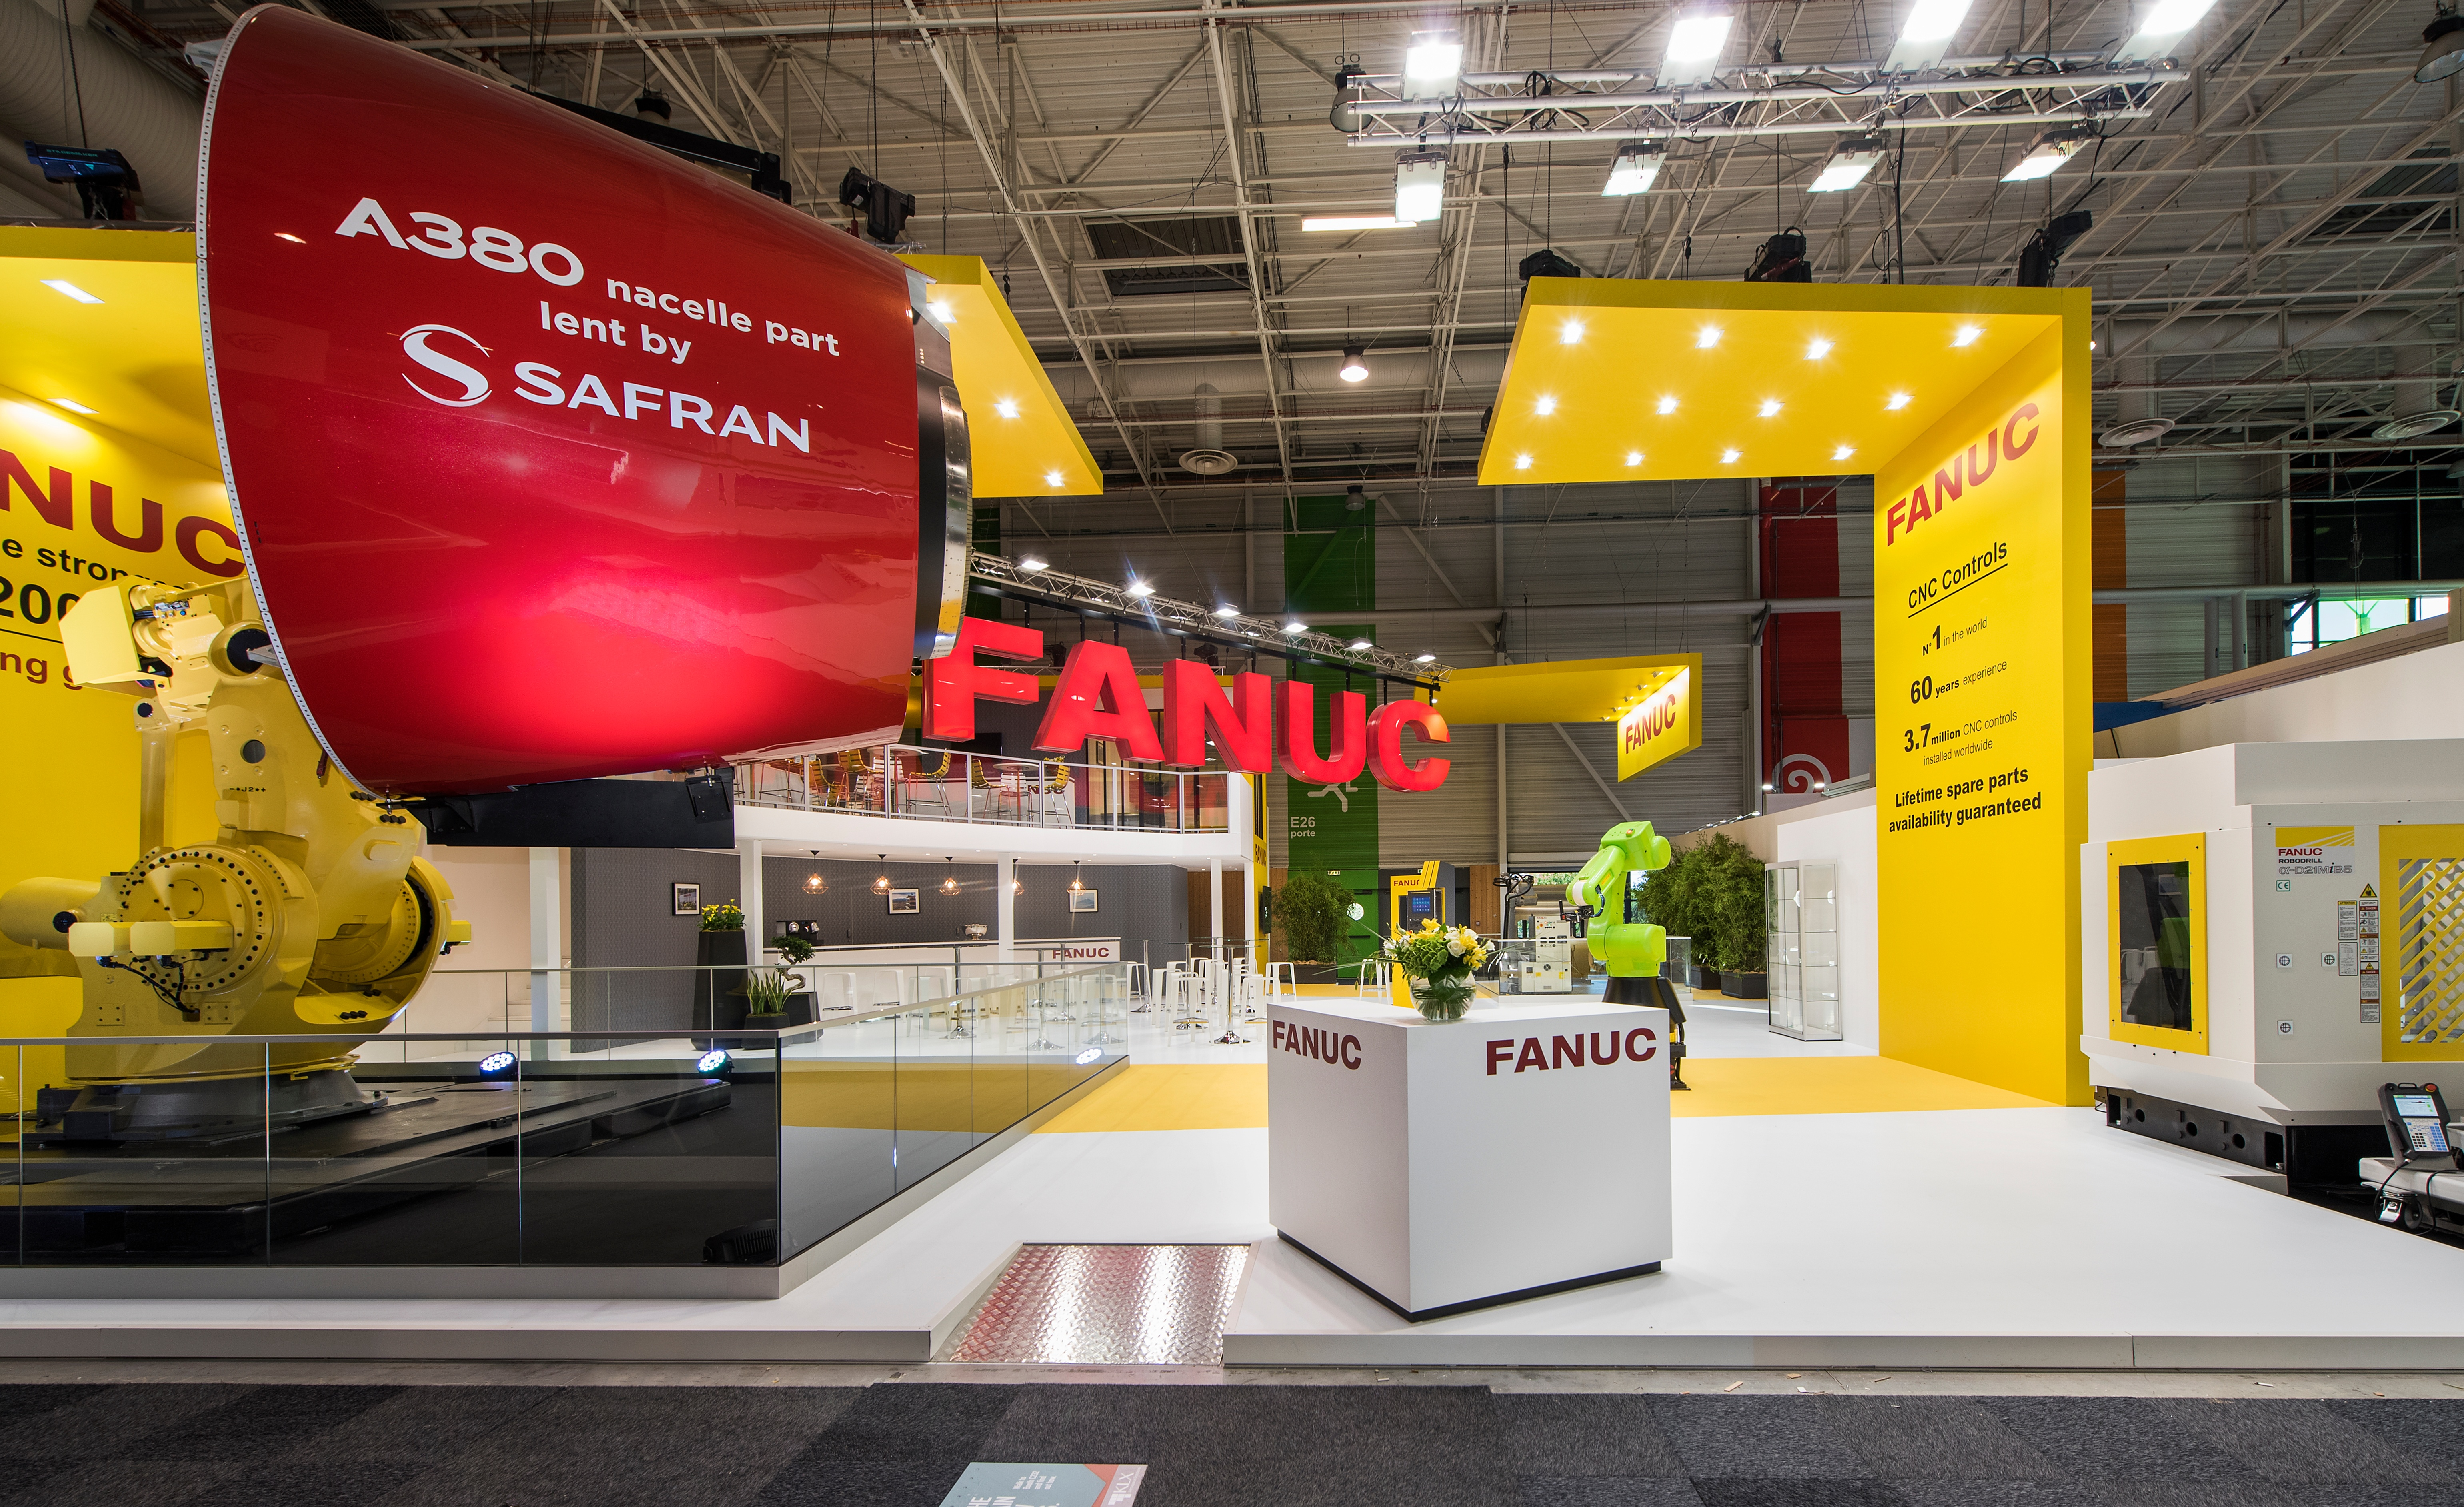 4-FANUC_SIAE_BOURGET_2017_Co-AbsoluteEvent